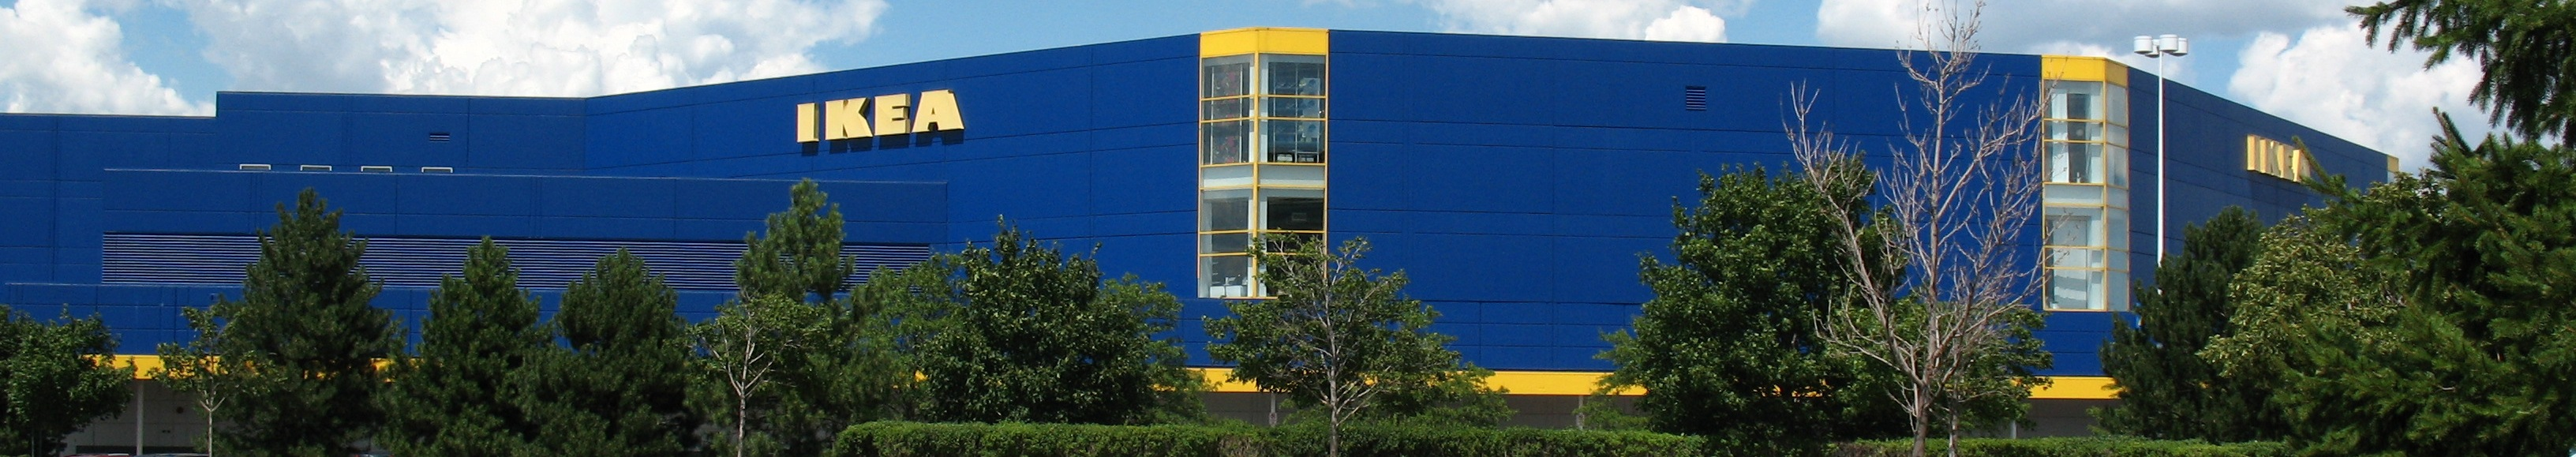 301 moved permanently for Ikea greenville sc